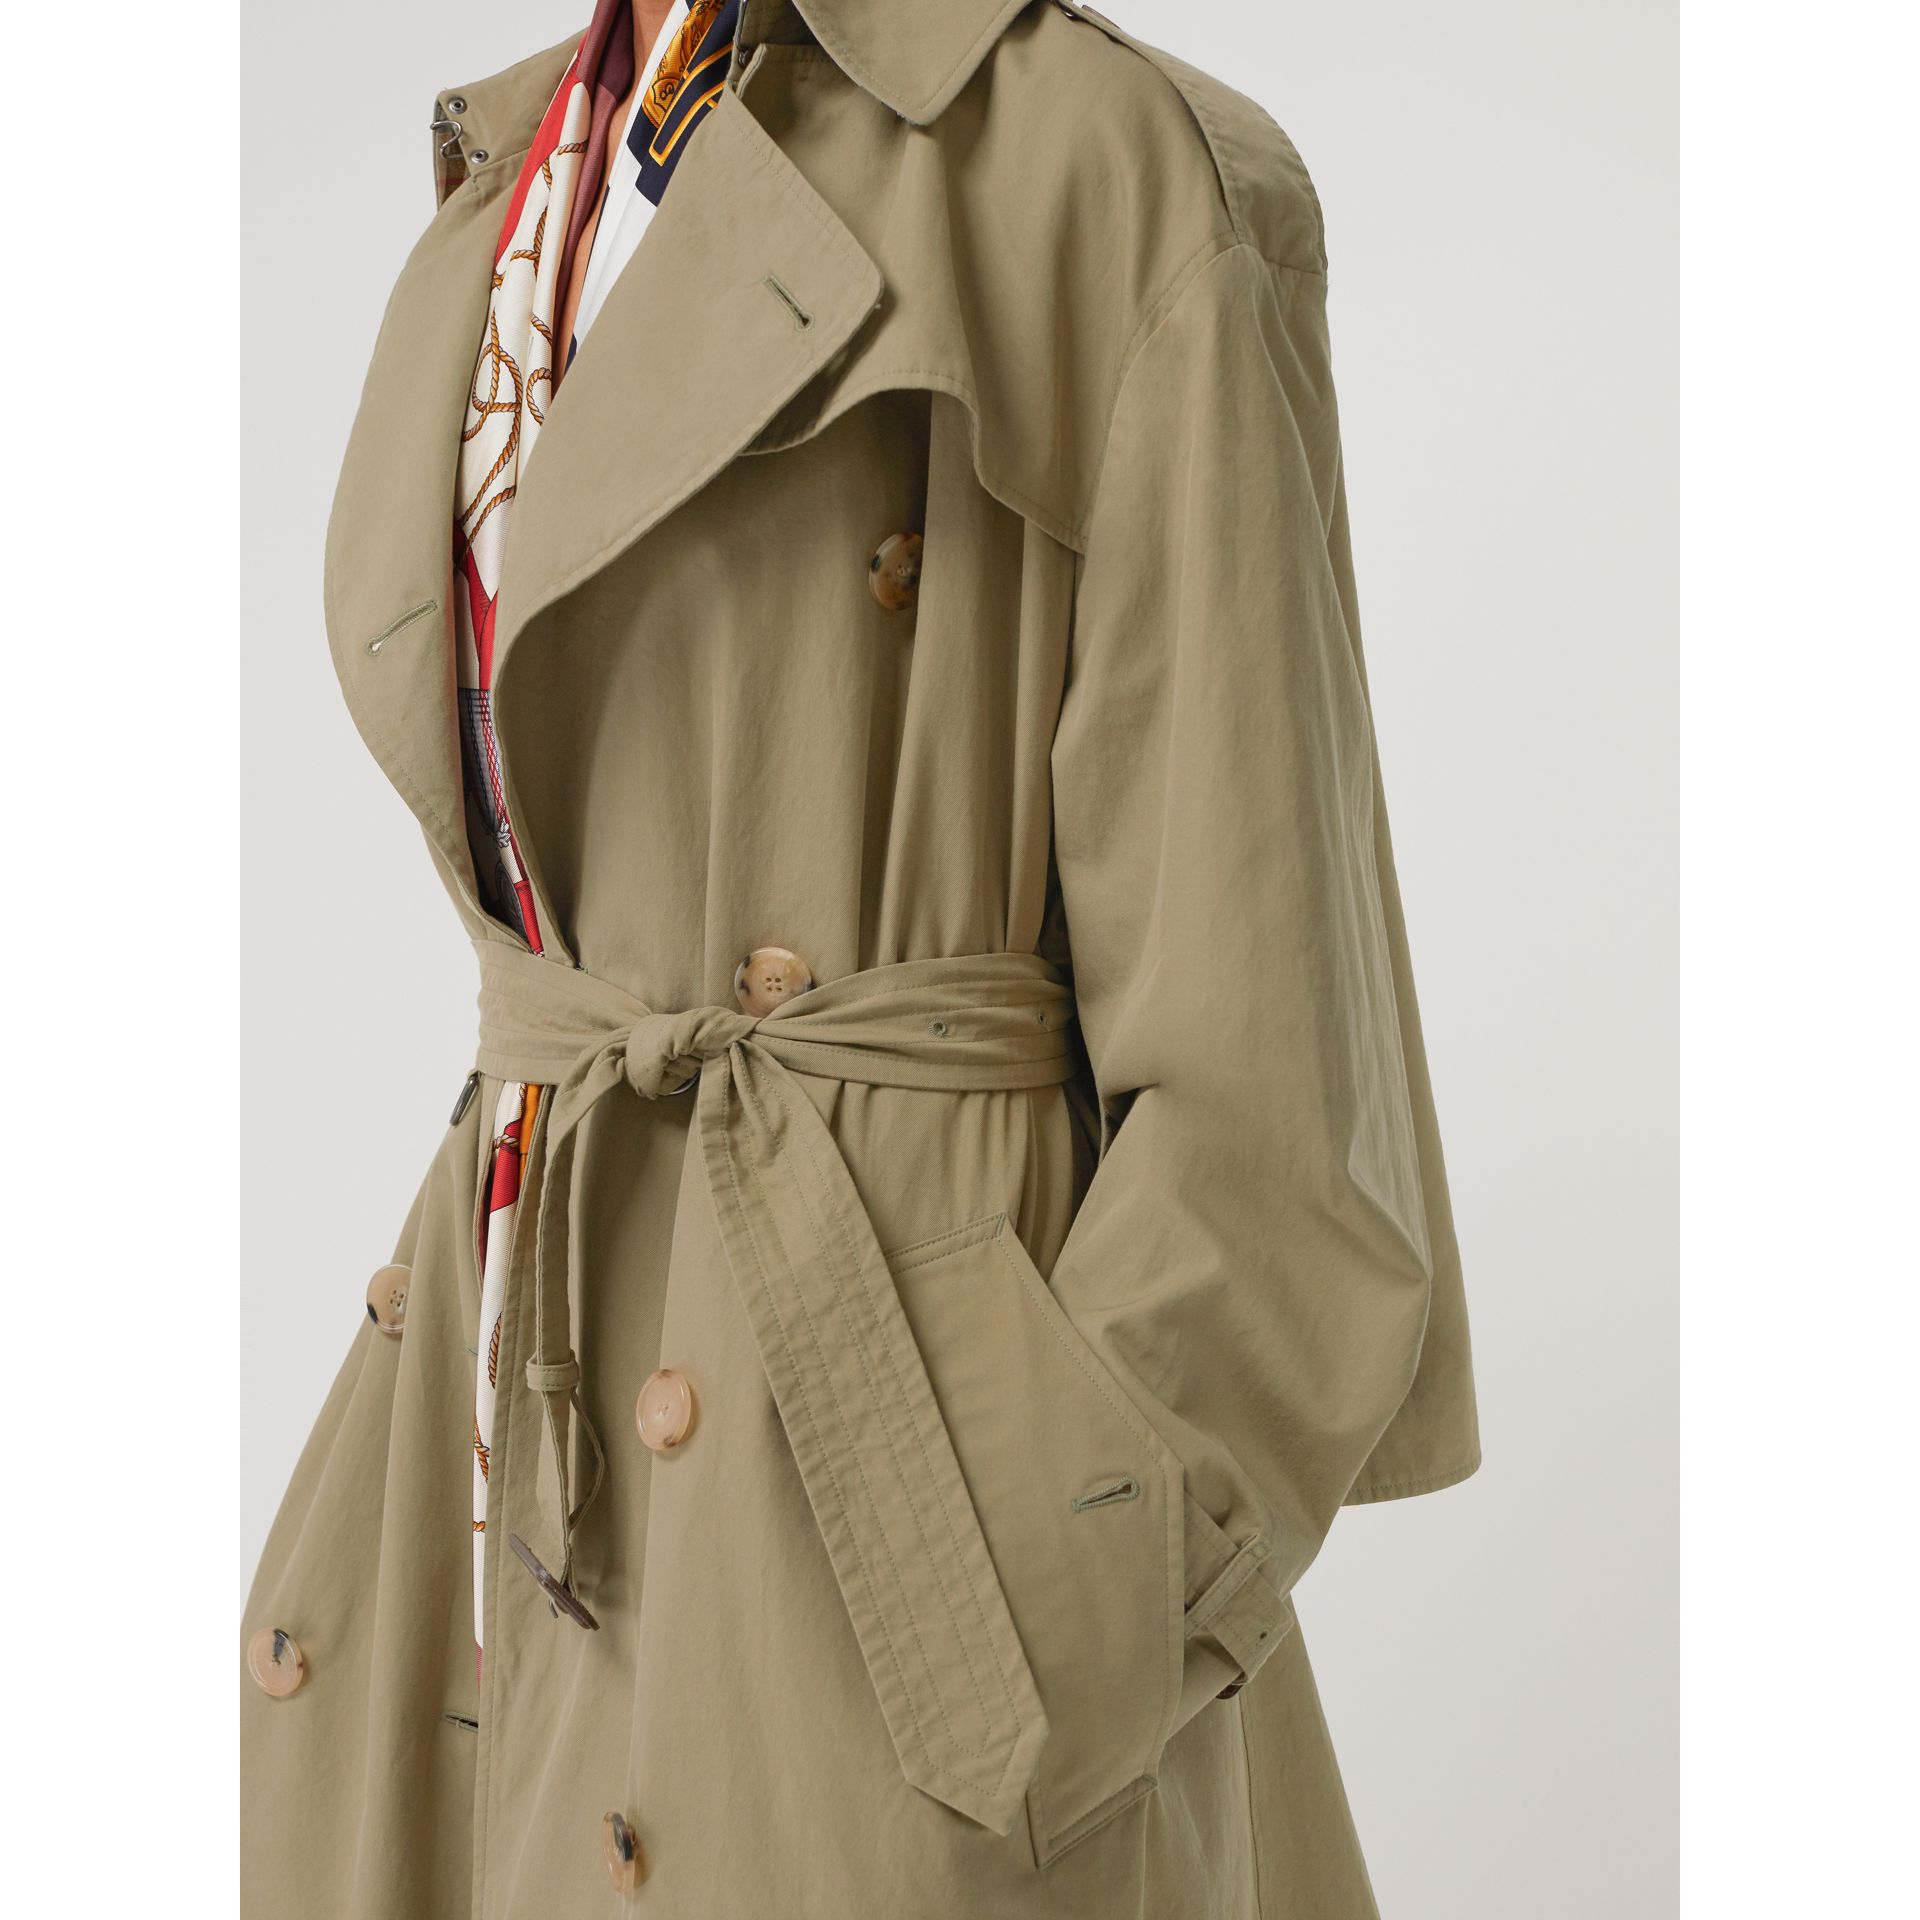 Relaxed Fit Tropical Gabardine Trench Coat in Vintage Green - Women | Burberry United States - gallery image 1